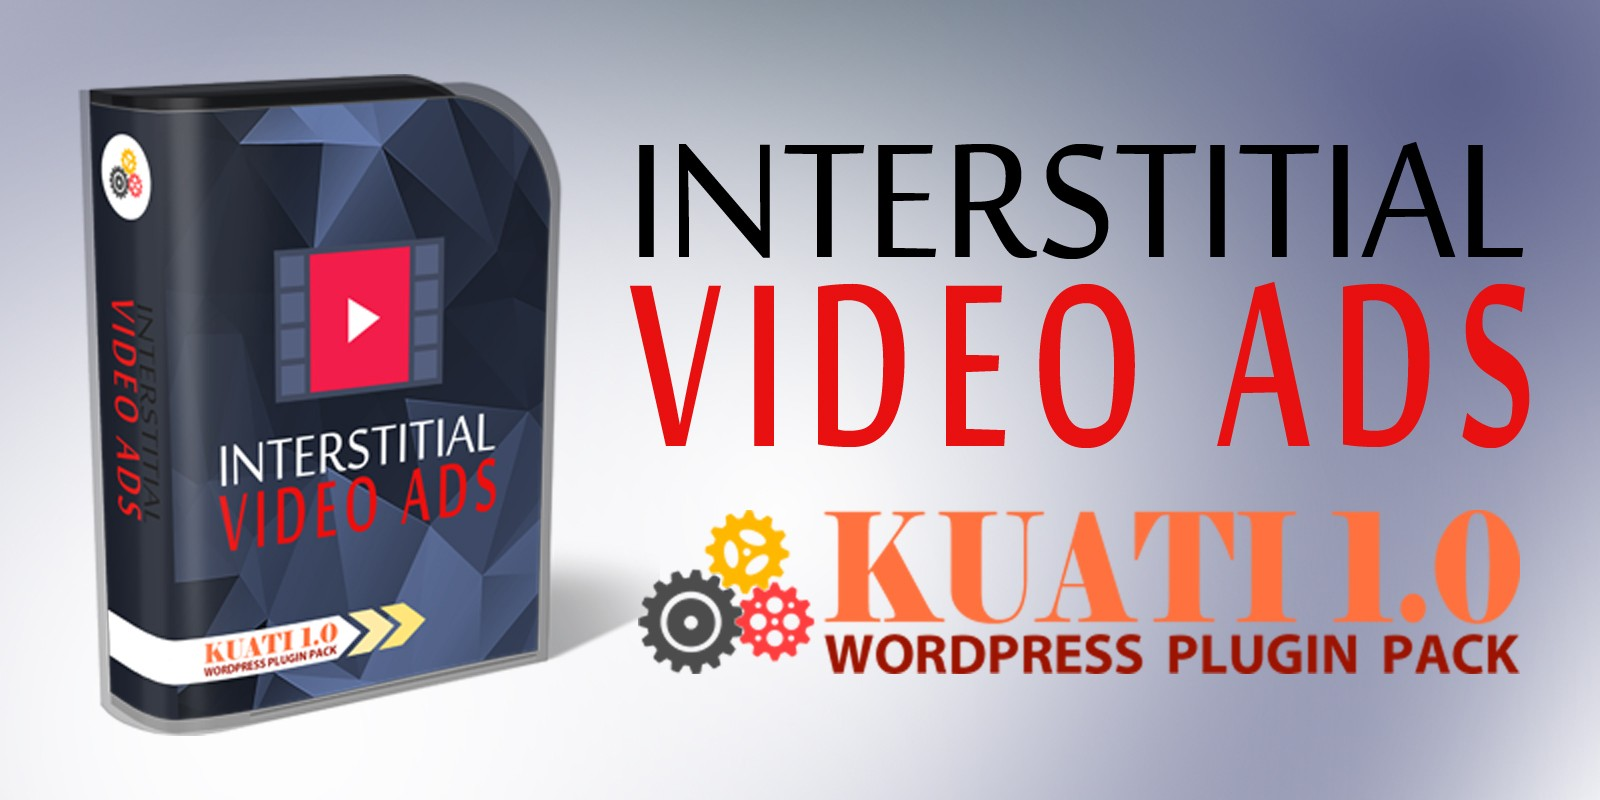 Kuati Interstitial Video Ads WordPress Plugin